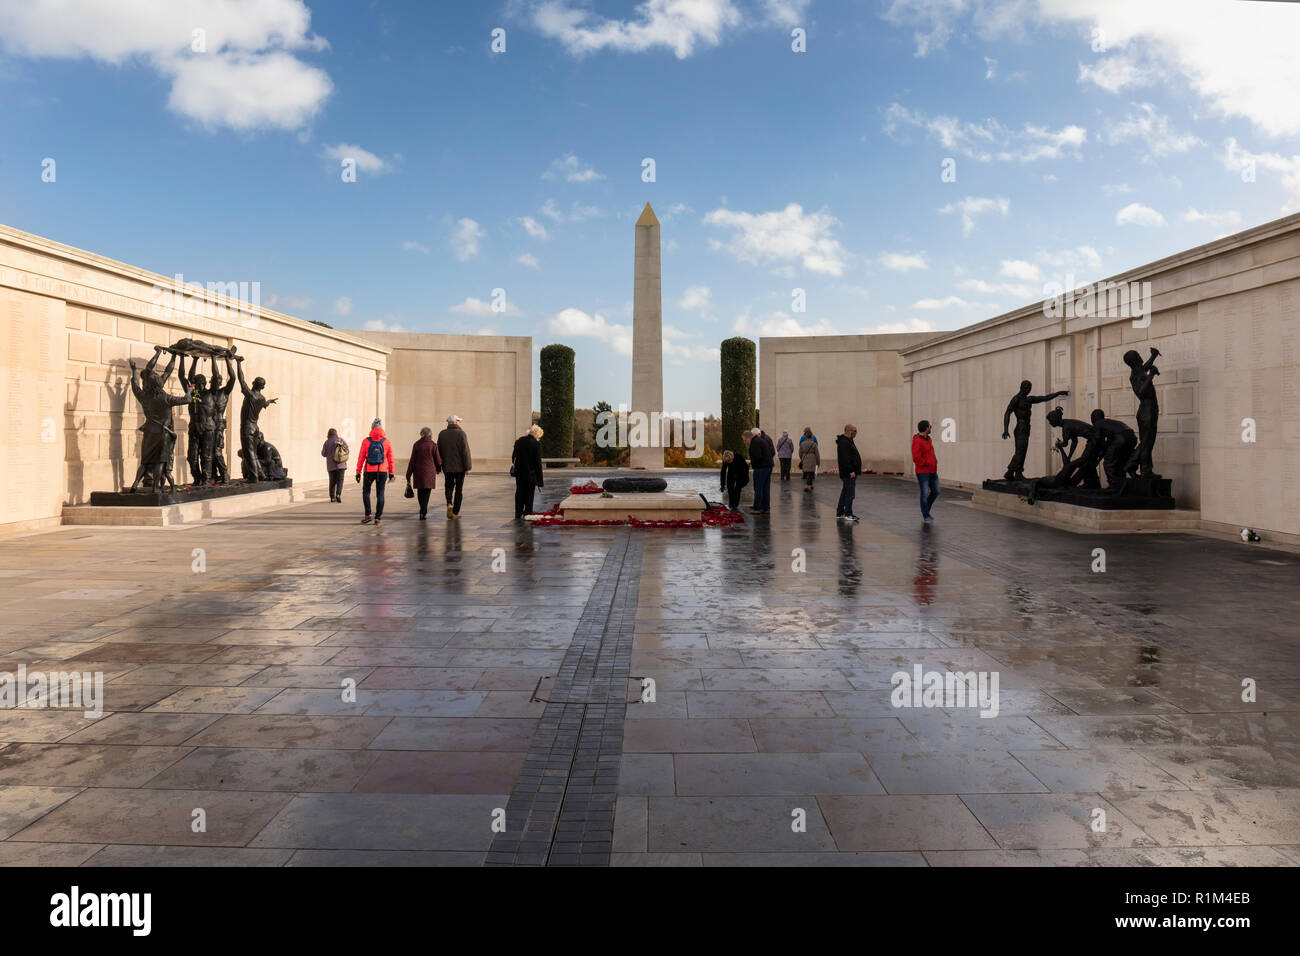 The Armed Forces Memorial - National Memorial Arboretum, Airewas, Staffordshire, England - Stock Image